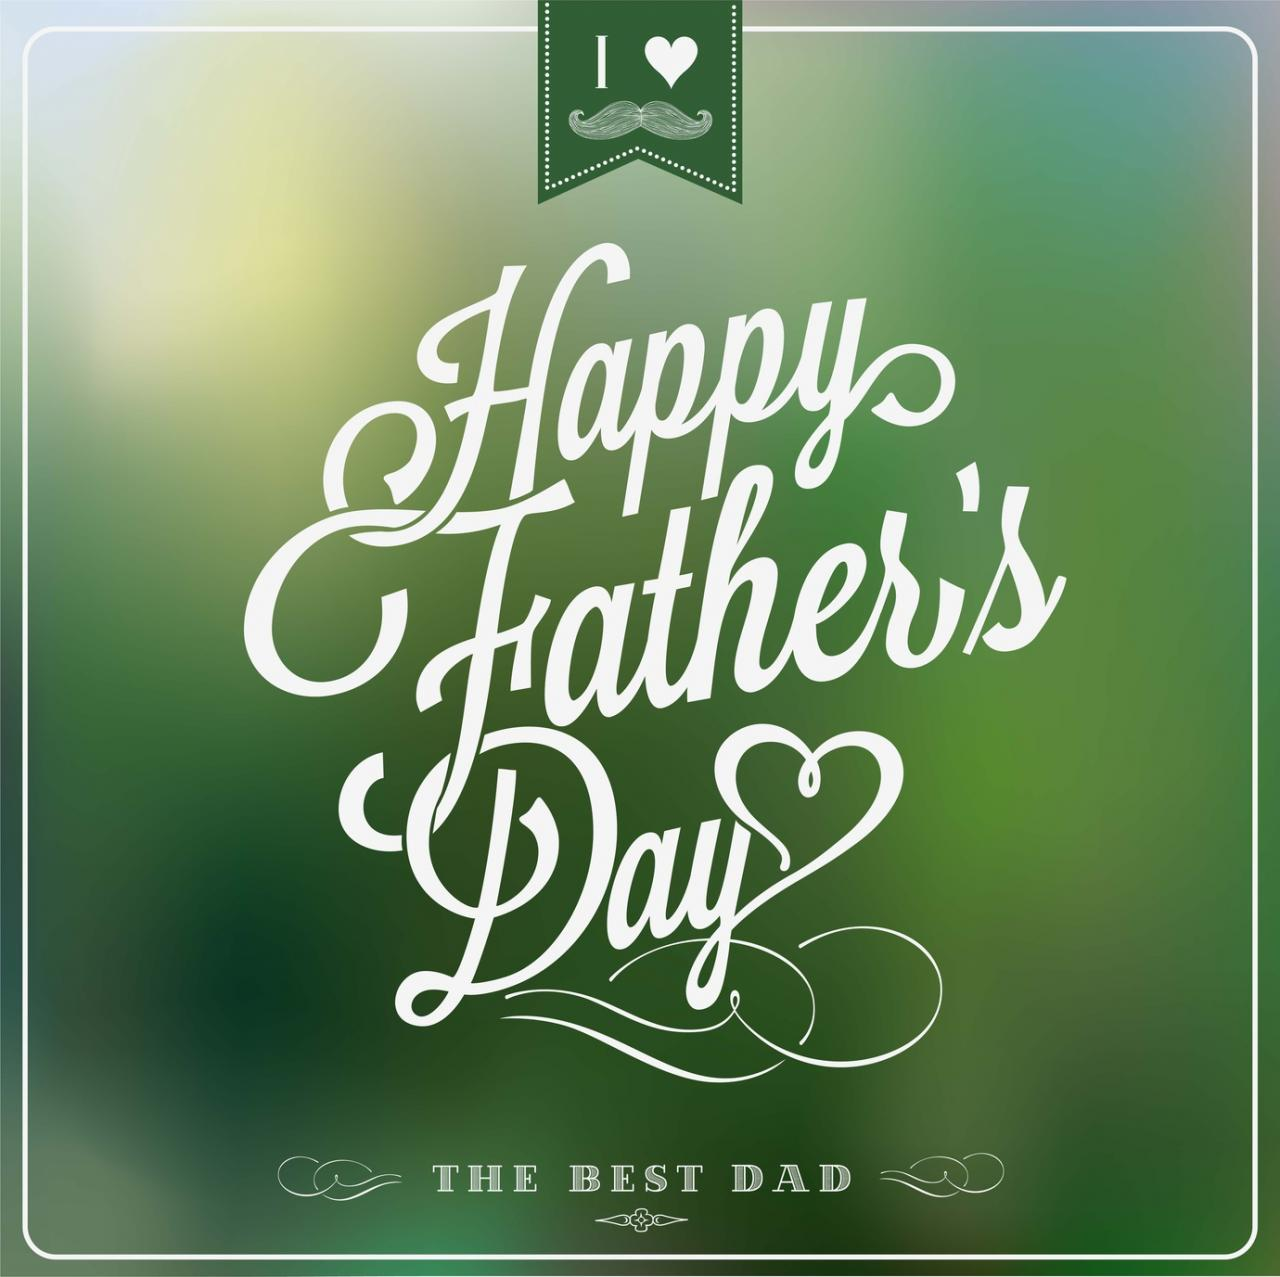 Happy Fathers Day 2019 Wishes, Greetings & Sayings – Fathers Day Poems